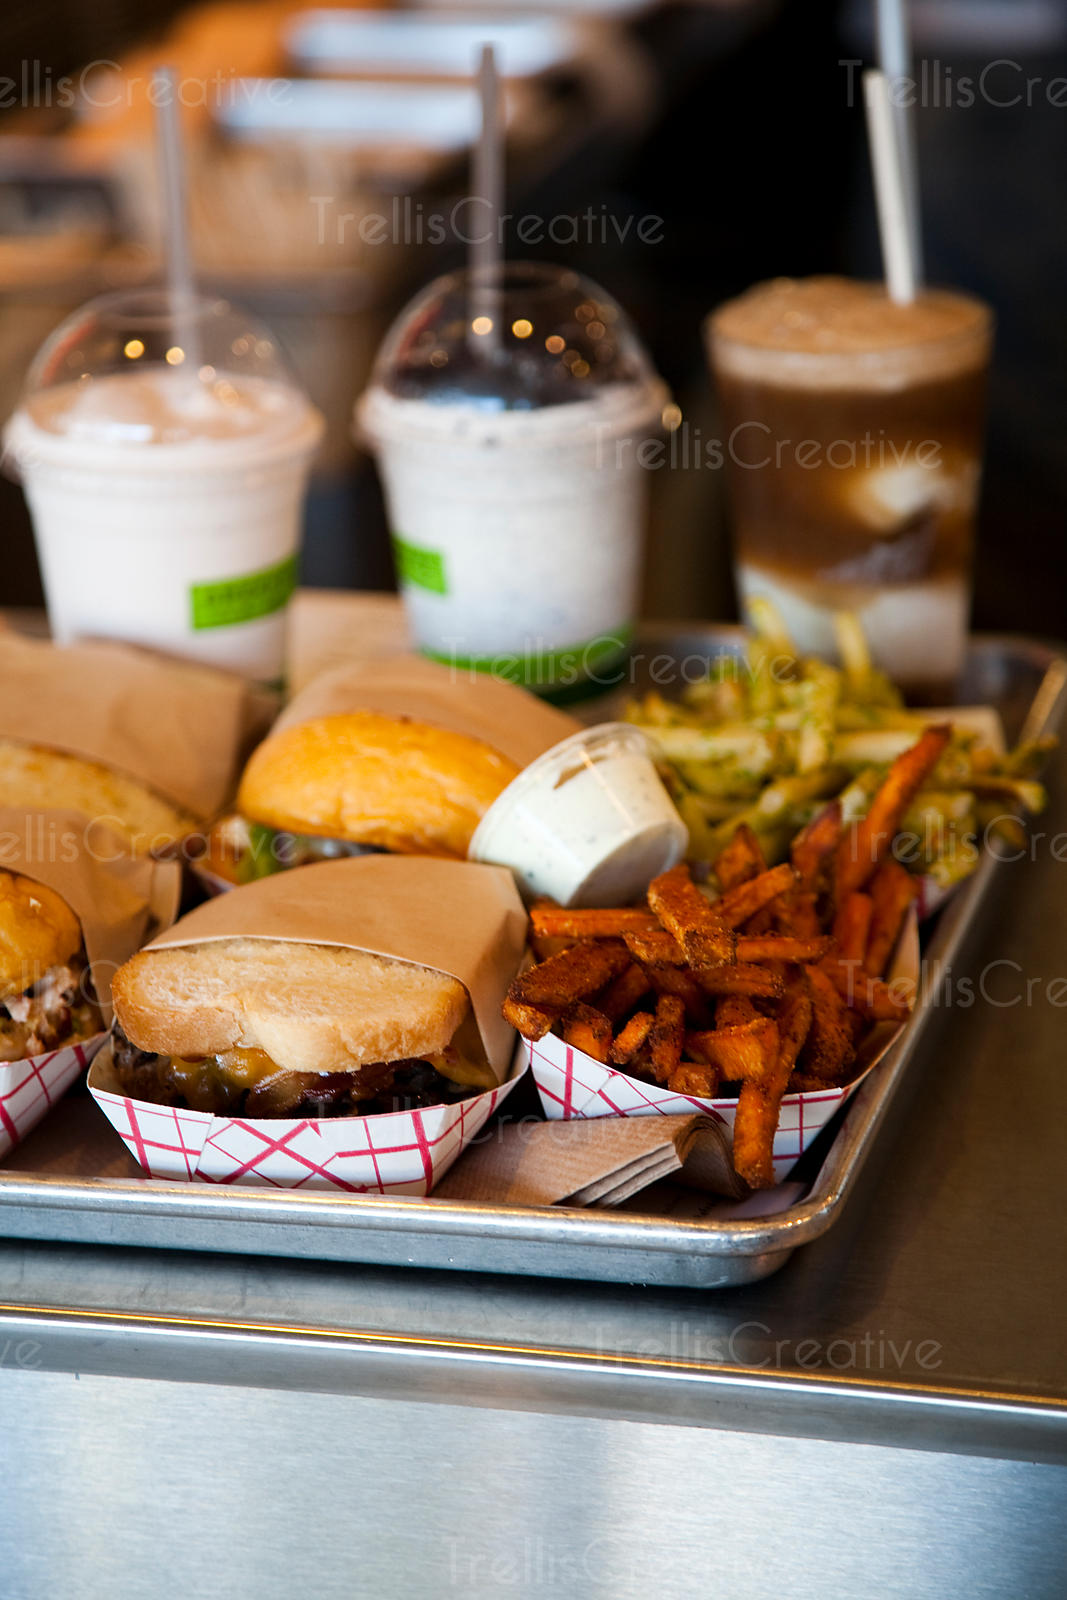 A tray of burgers and milk shakes at a diner